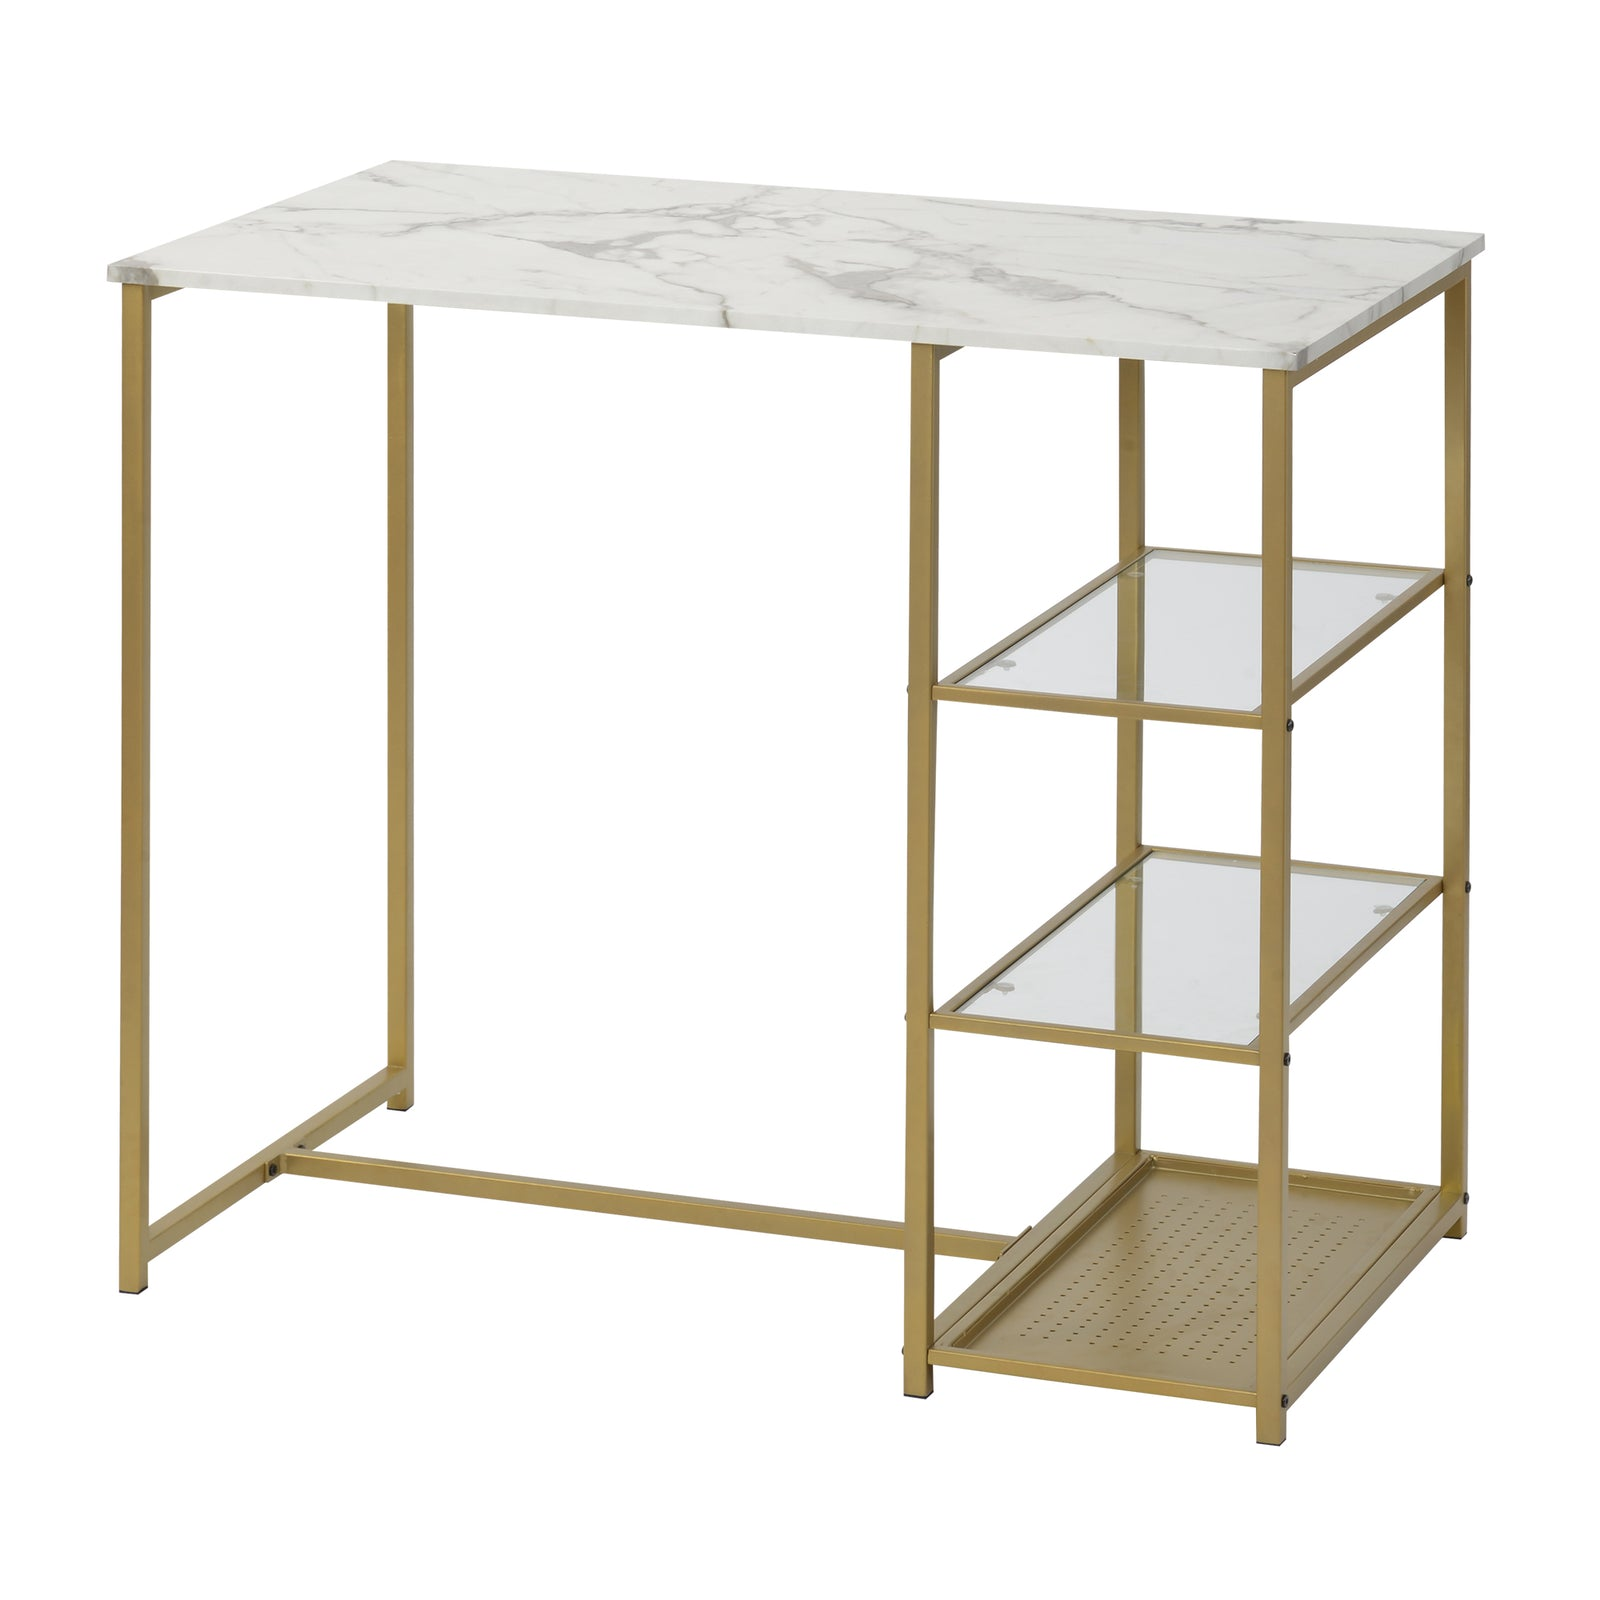 3 Counts - Modern Pub Set with Rectangular Table and Bar Stools - Gold Table